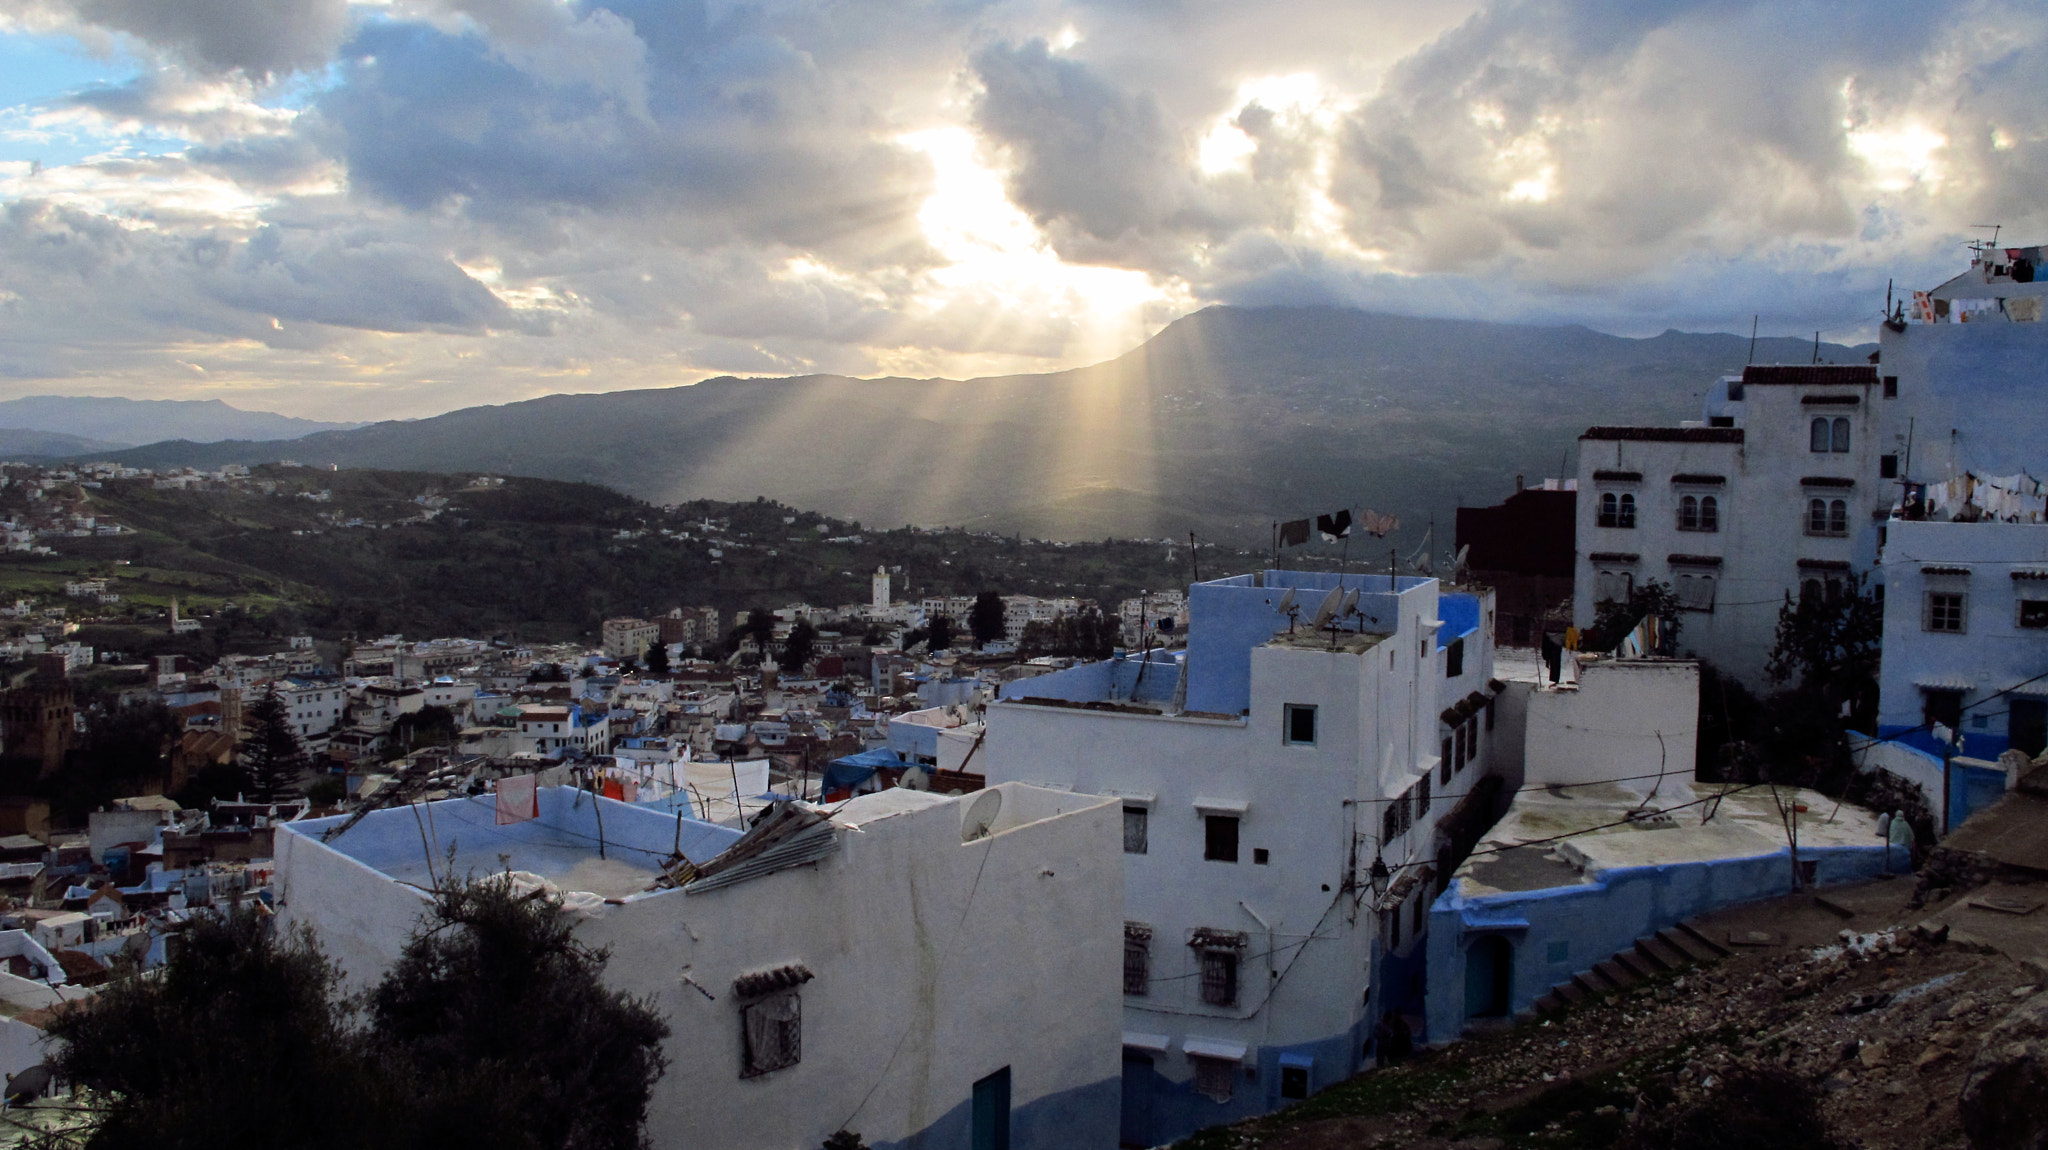 Photograph CHEFCHAOUEN, MOROCCO by Mathieu AIMARD on 500px